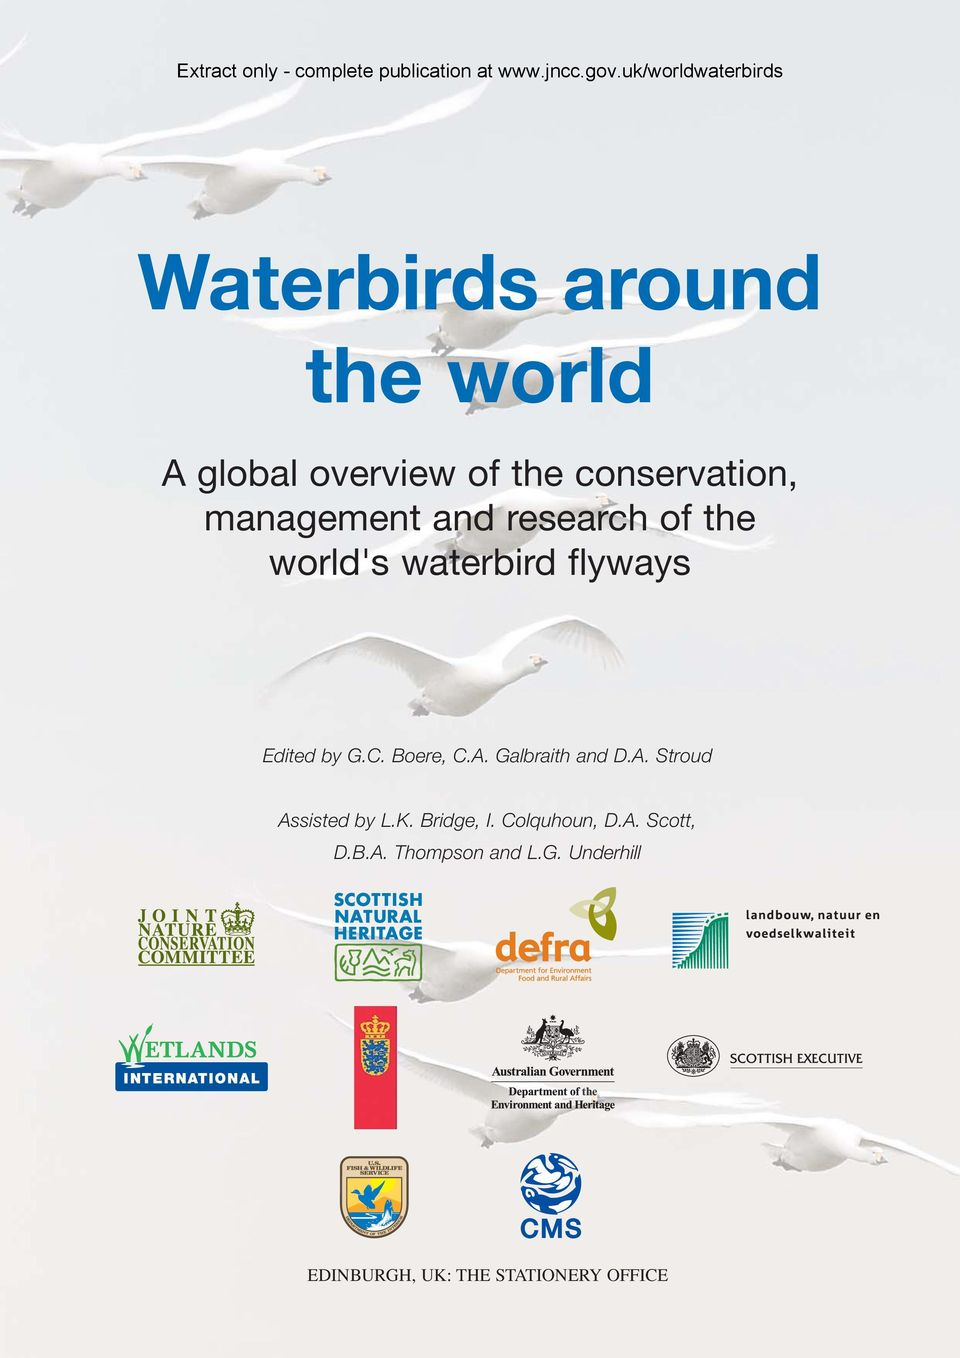 management and research of the world's waterbird flyways Edited by G.C. Boere, C.A.